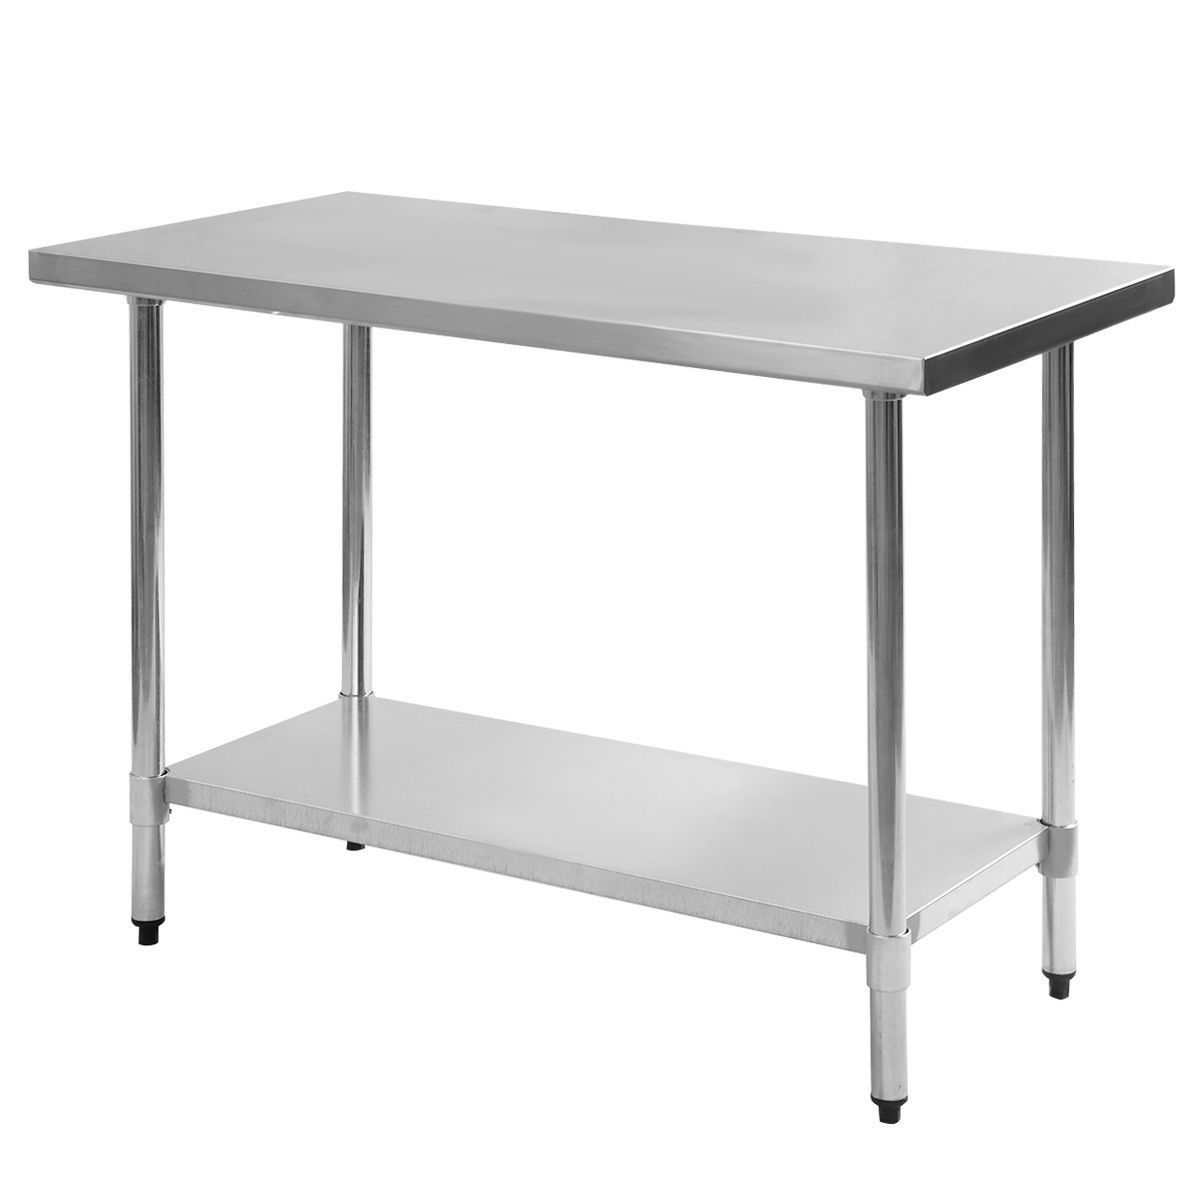 Restaurant Kitchen Work Tables stainless steel work table is the perfect prep table for use in